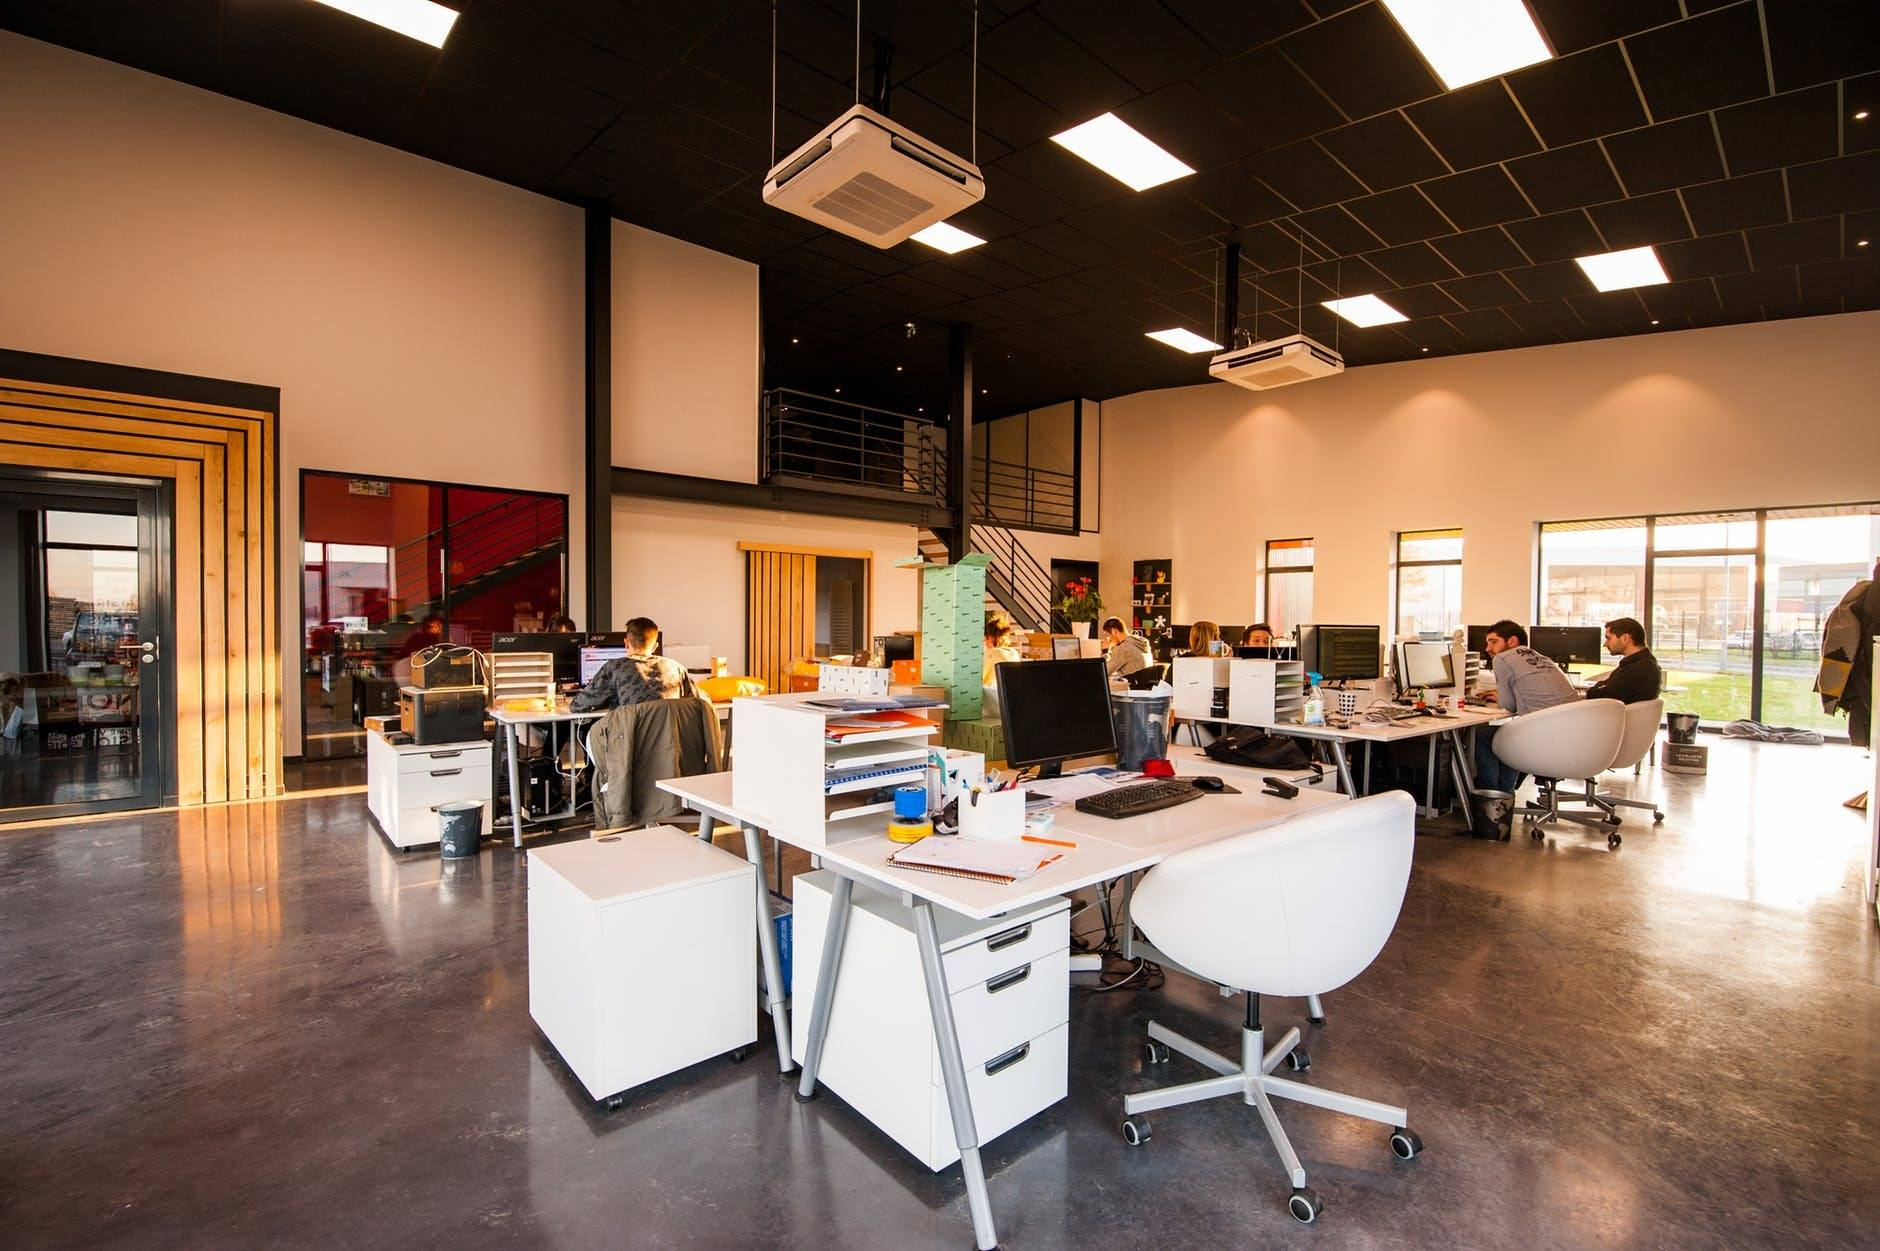 How To Have The Right Space For Your Business